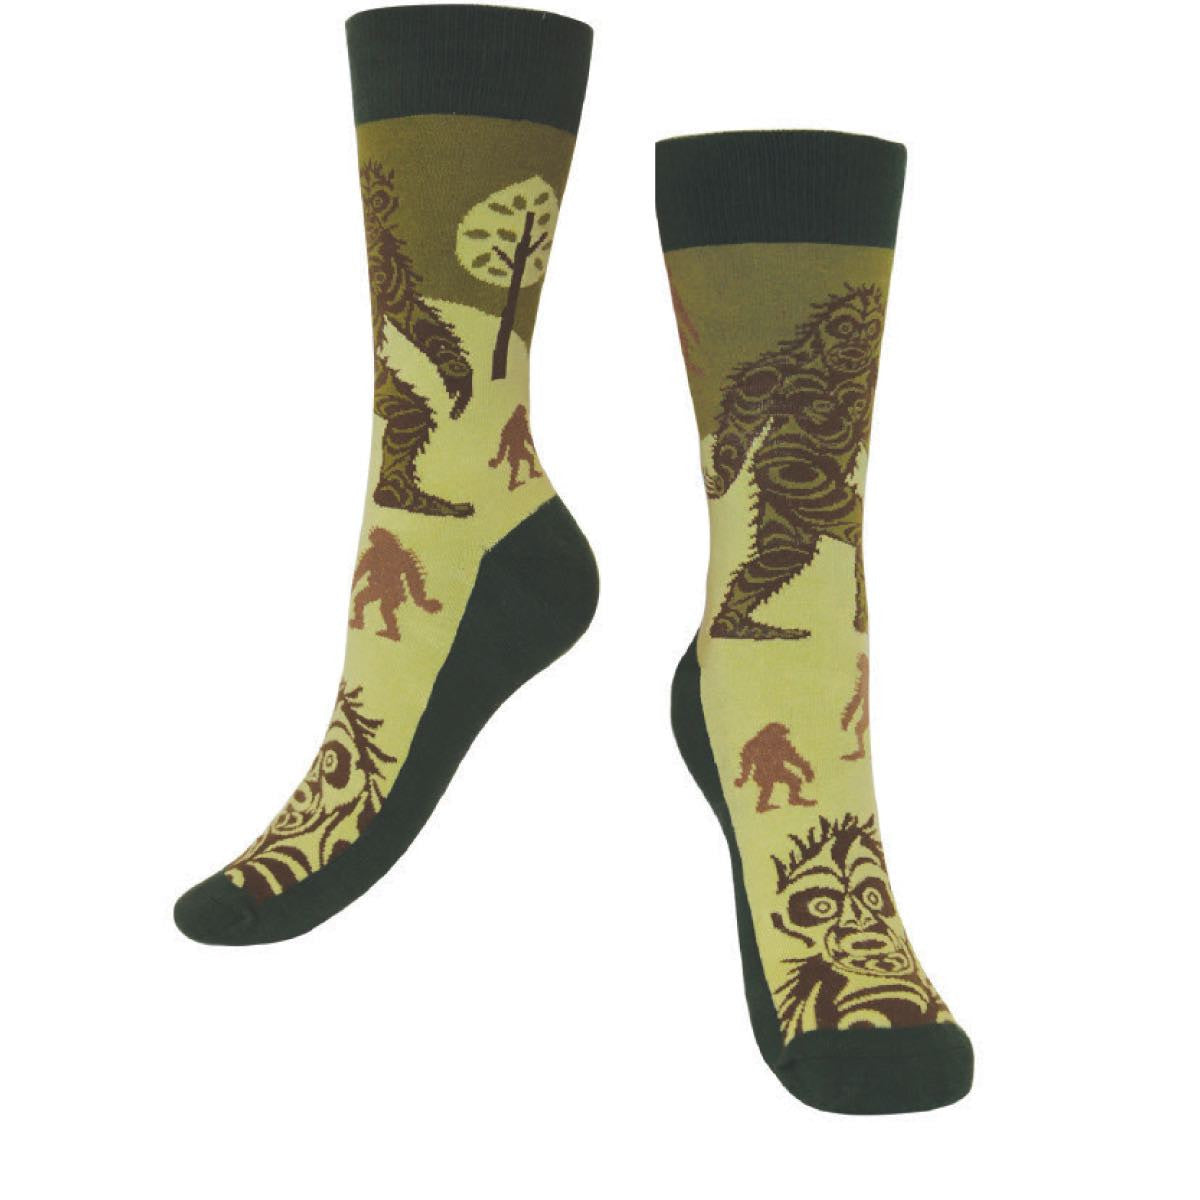 art socks sasquatch francis horne sr perfect gift unique gift colorful socks big foot